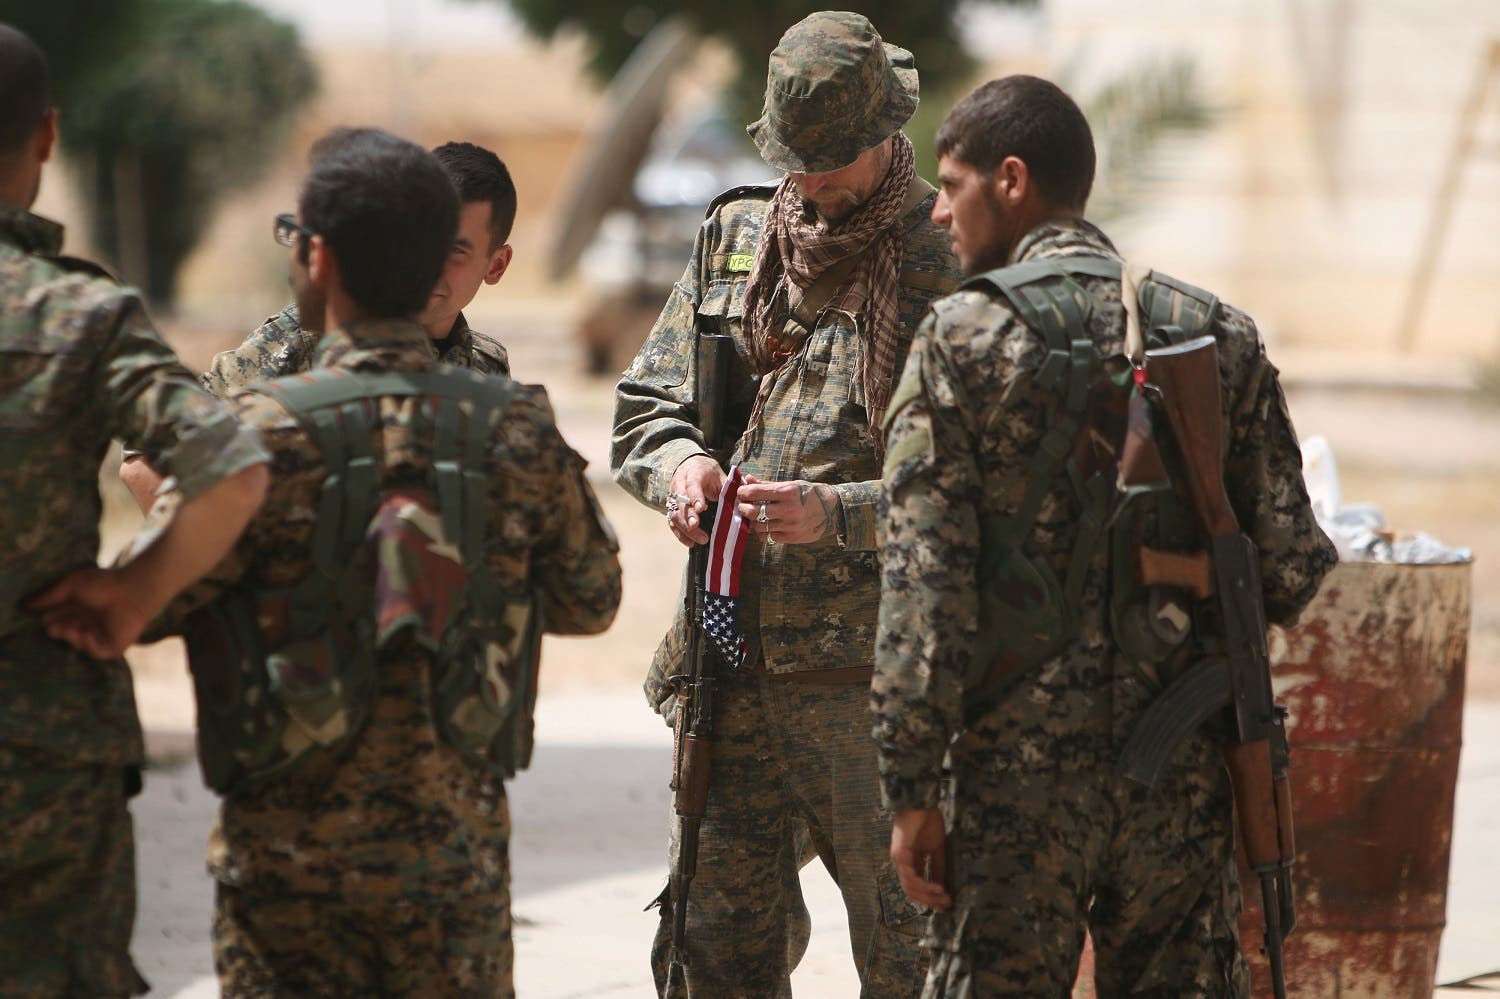 A U.S. fighter, who is fighting alongside with Syria Democratic Forces (SDF), carries his national flag as he stands with SDF fighters in northern province of Raqqa, Syria May 27, 2016. REUTERS